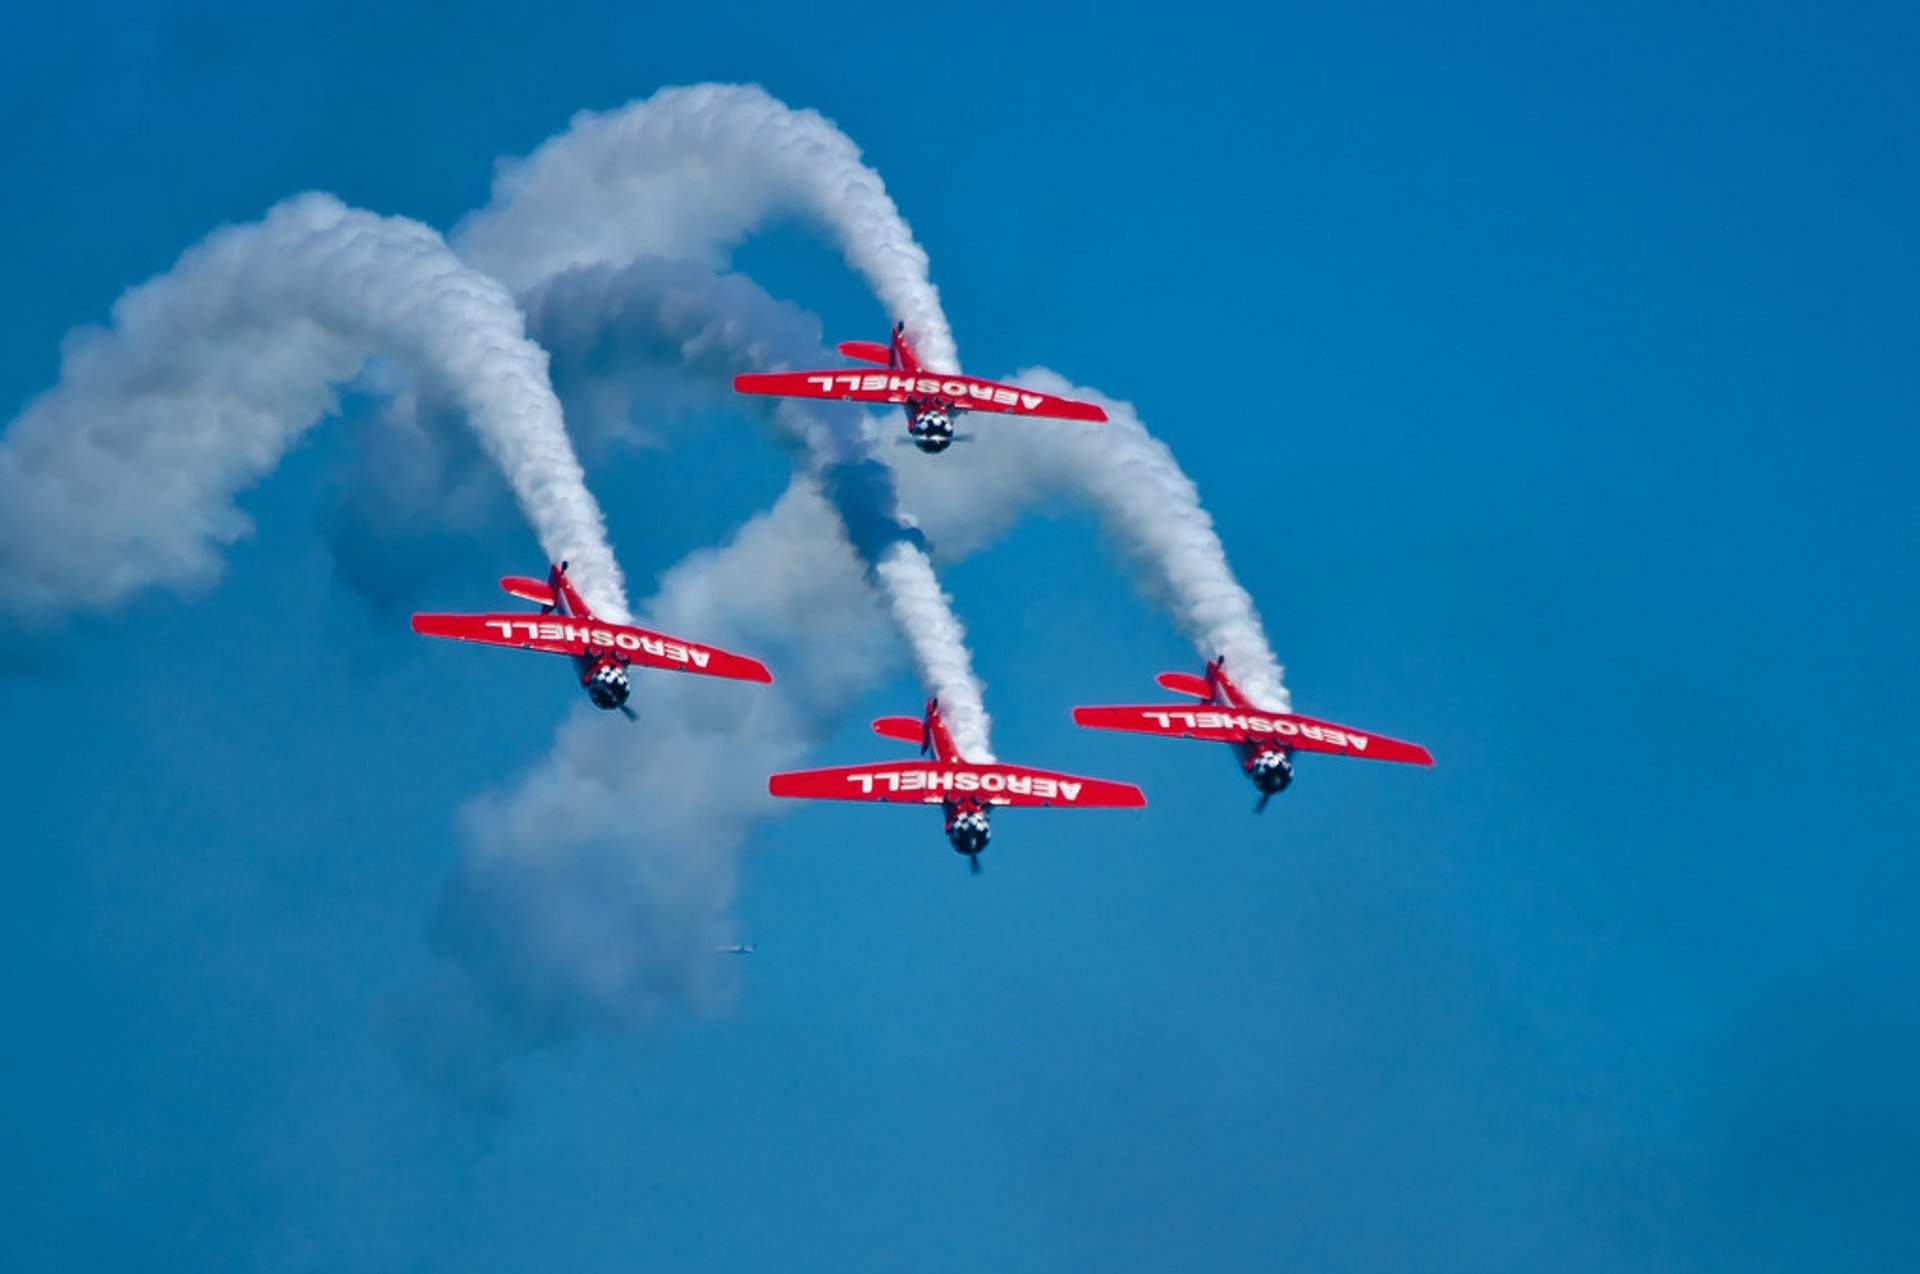 Air And Water Show Chicago 2020.Chicago Air And Water Show 2020 Dates Map